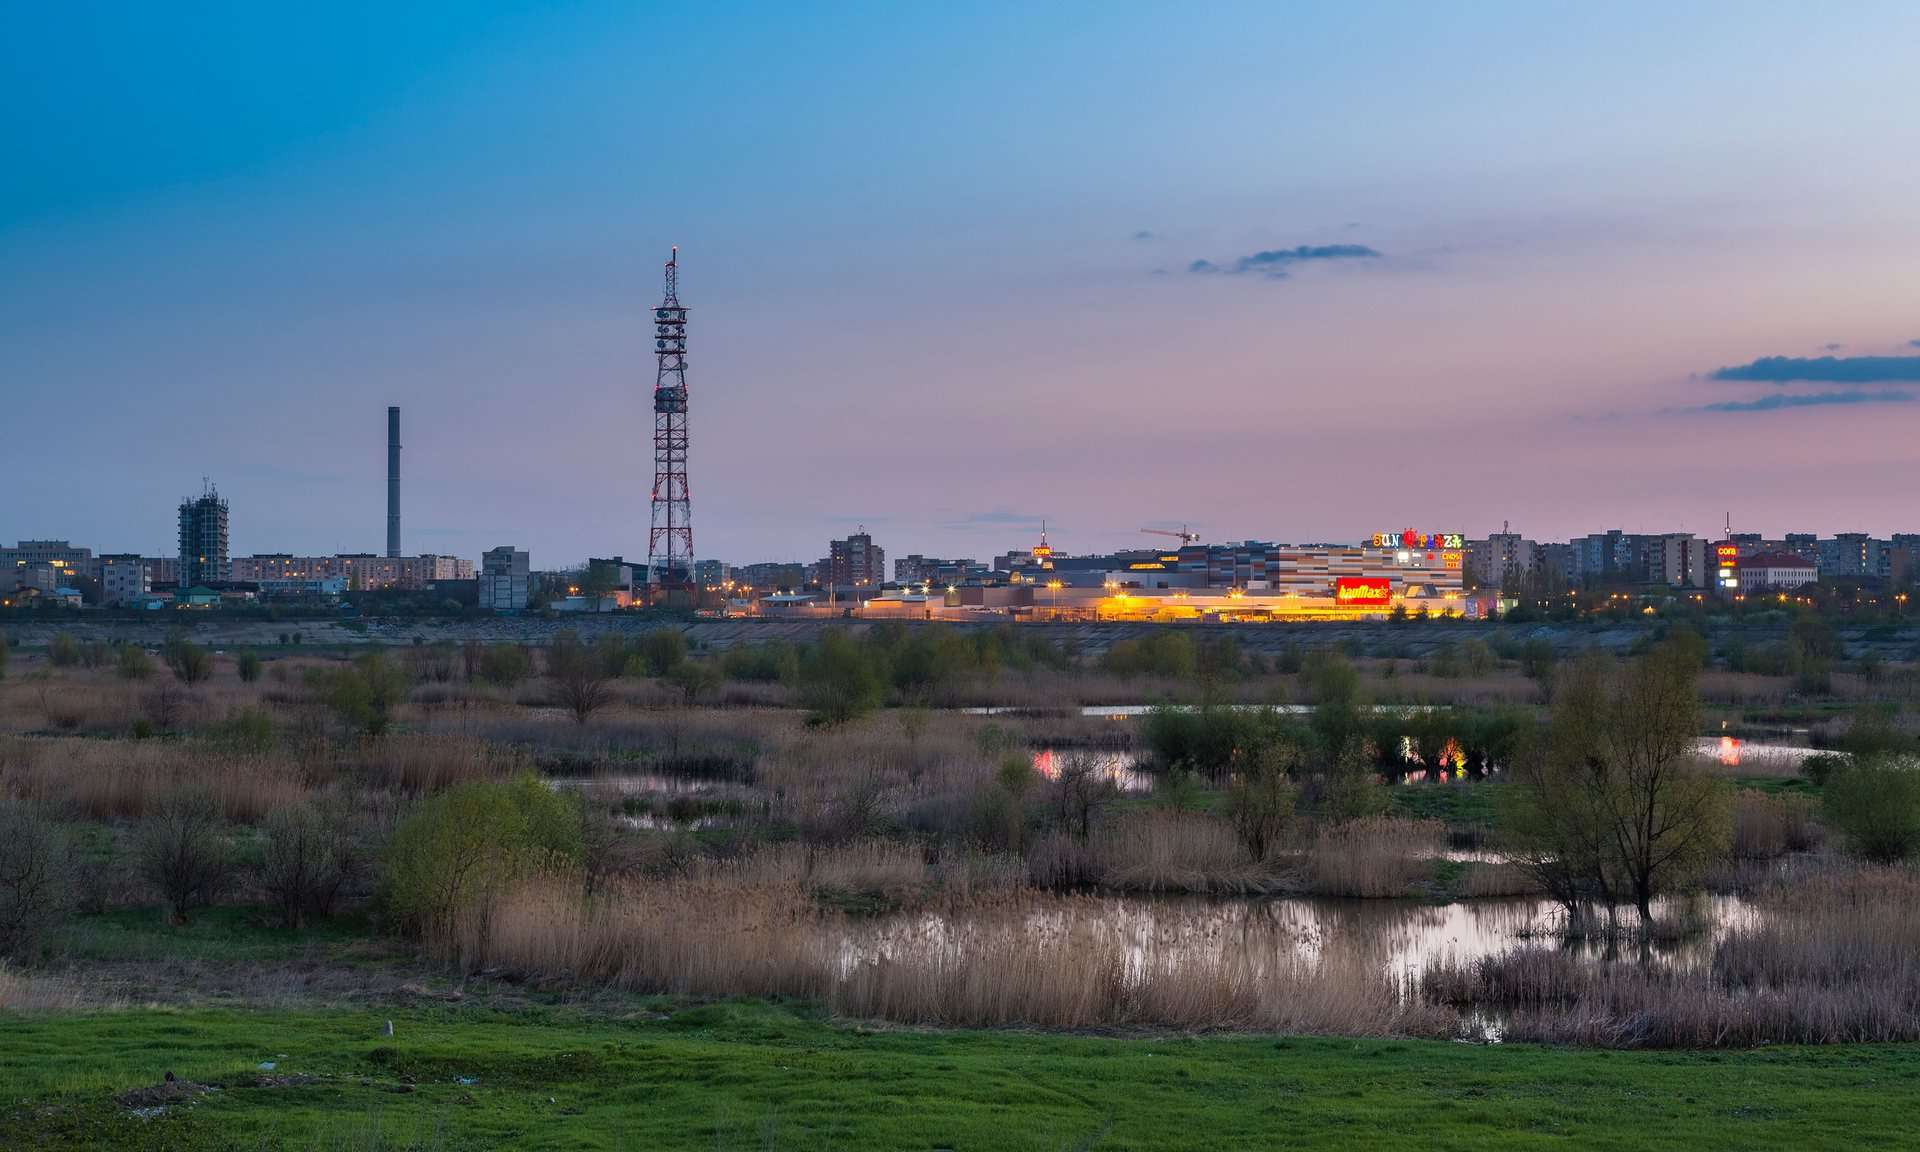 Nightfall over the south-eastern Bucharest suburbs near Văcărești Lake. Photograph: Alamy